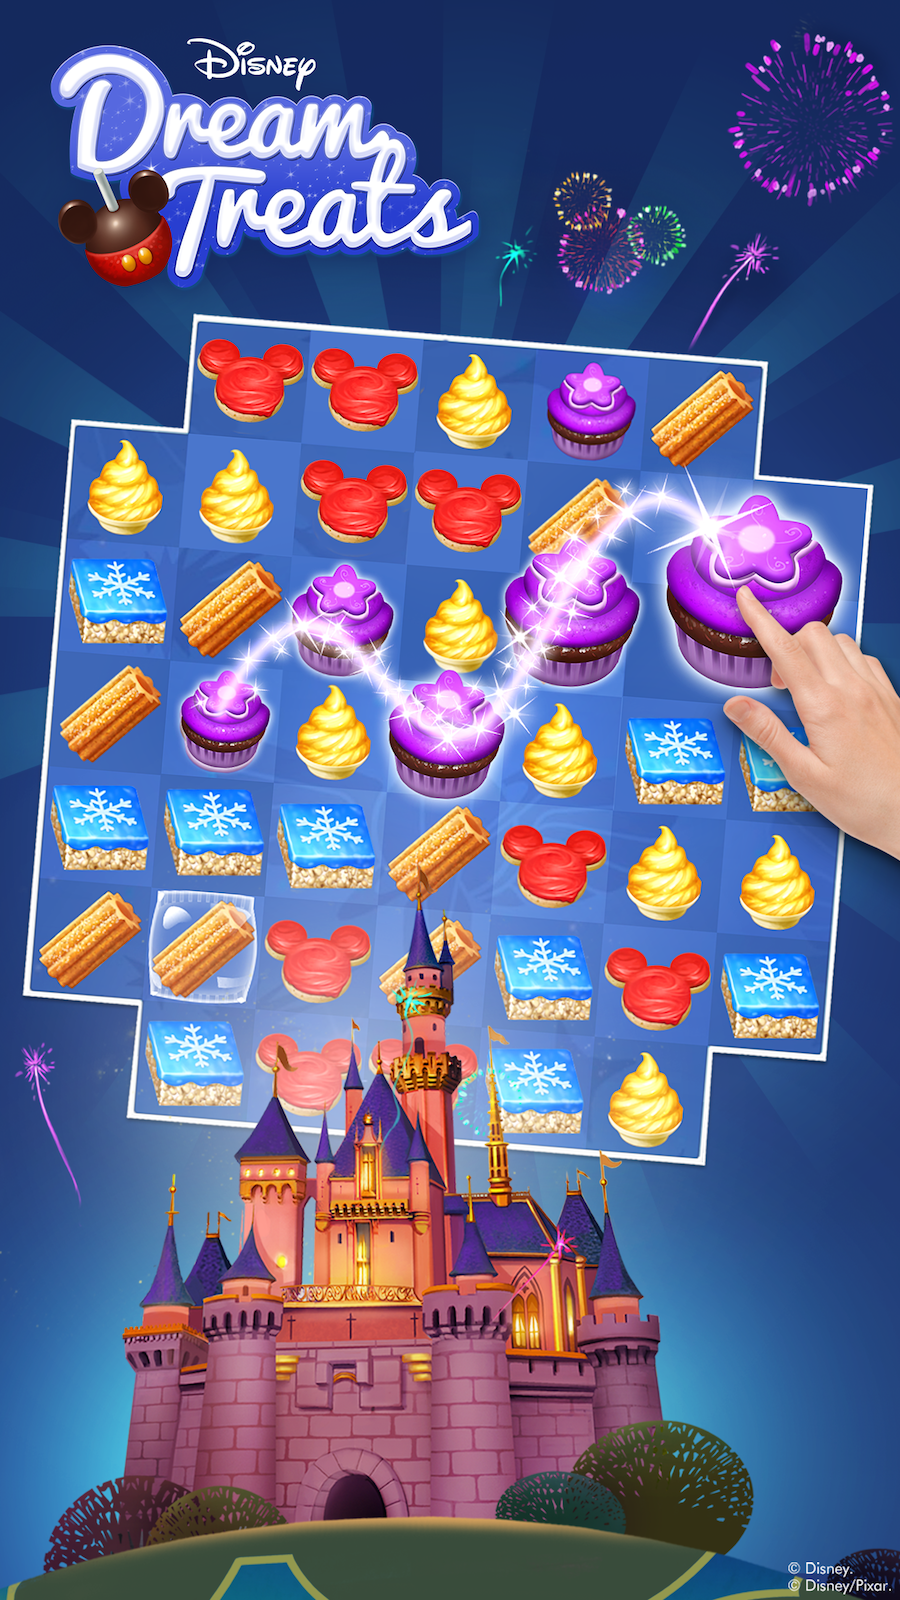 New Disney Dream Treats Puzzle Game Available for Download Now